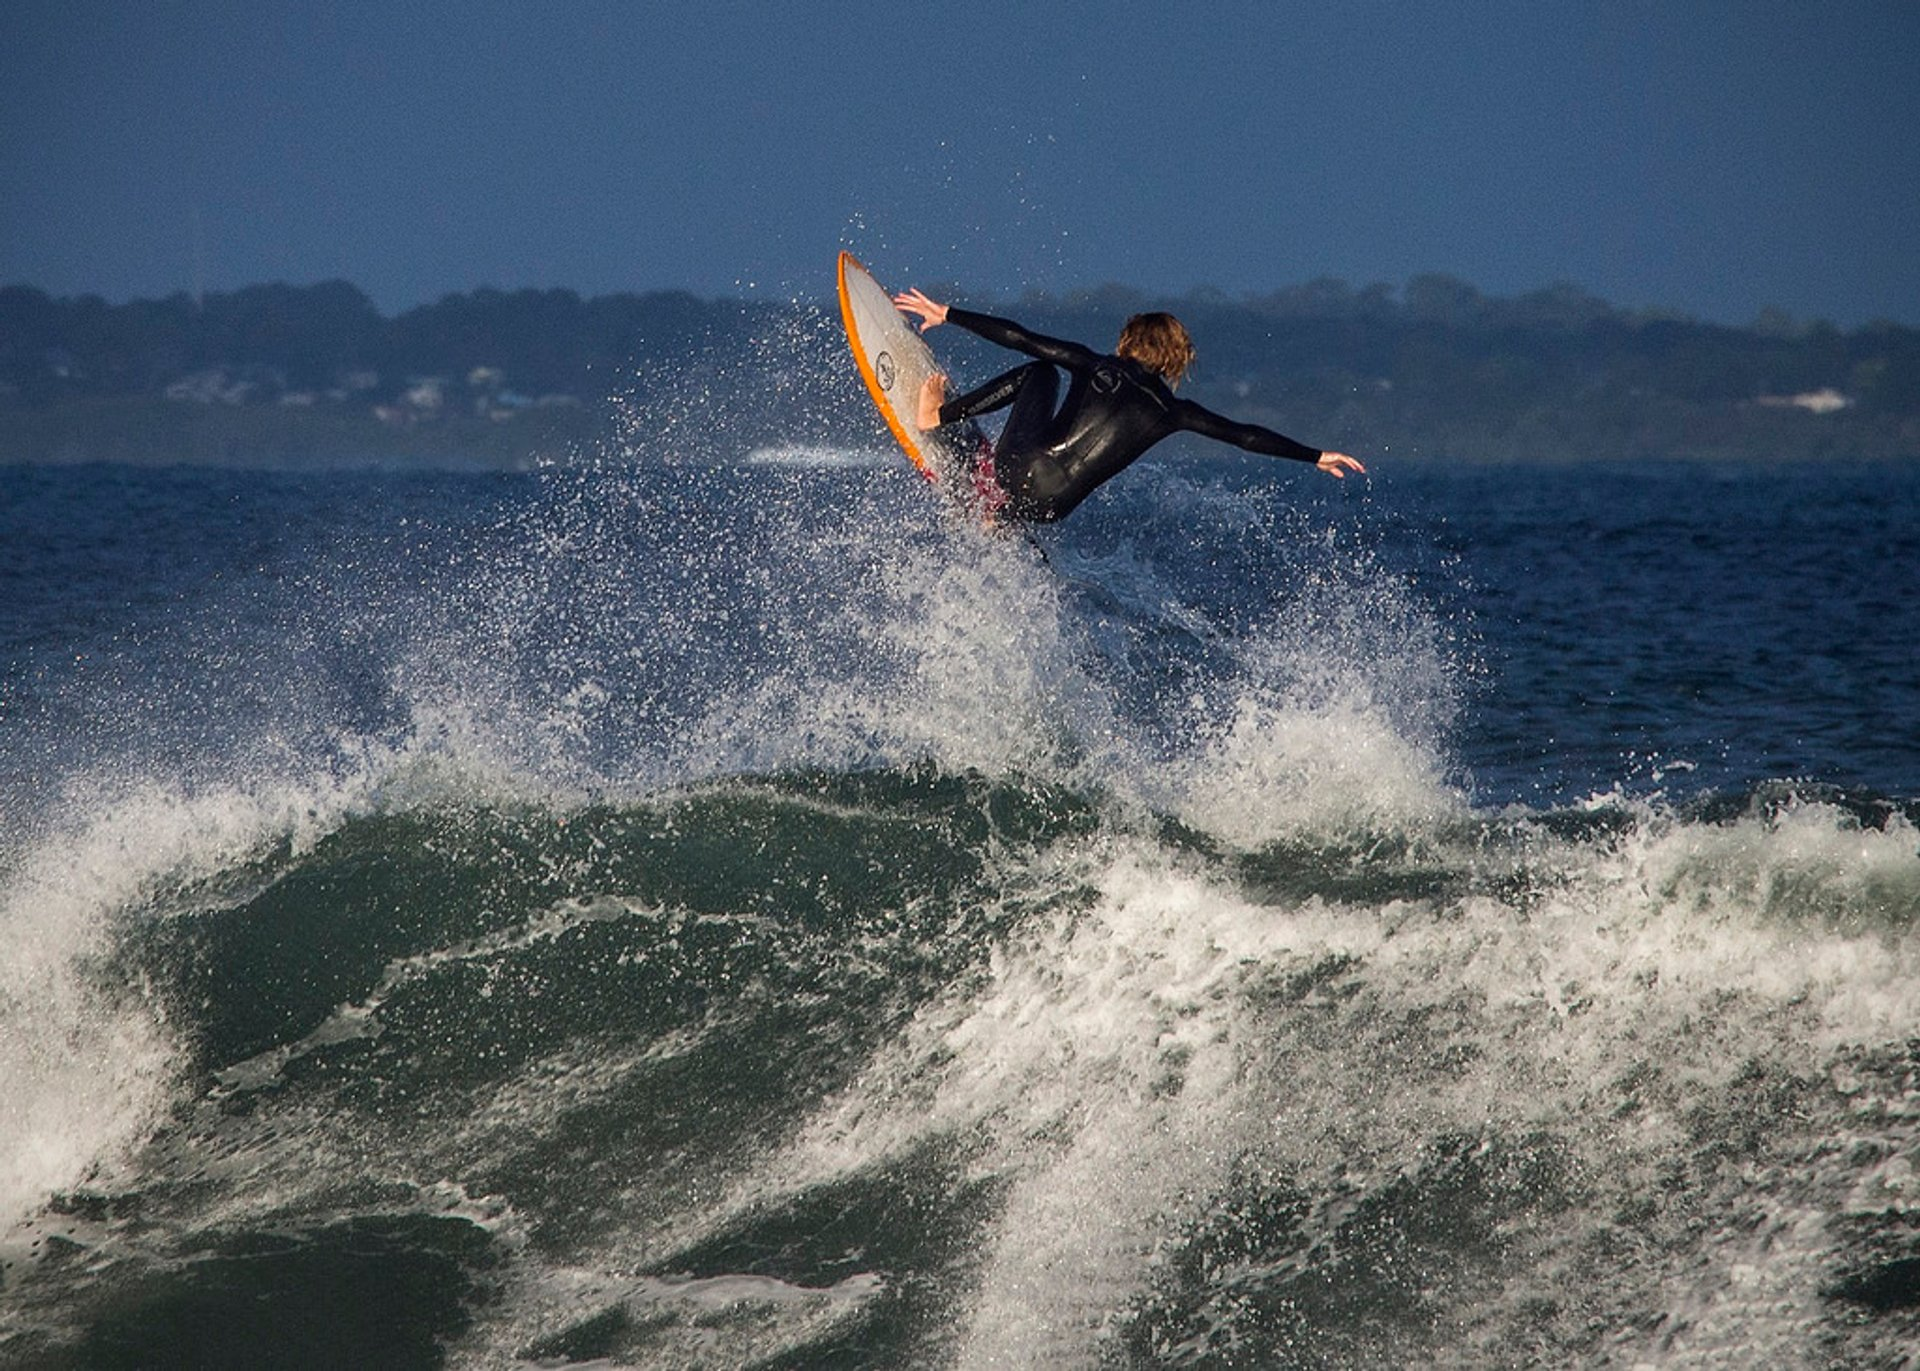 Surfing at Point Leo, Mornington Peninsula 2020